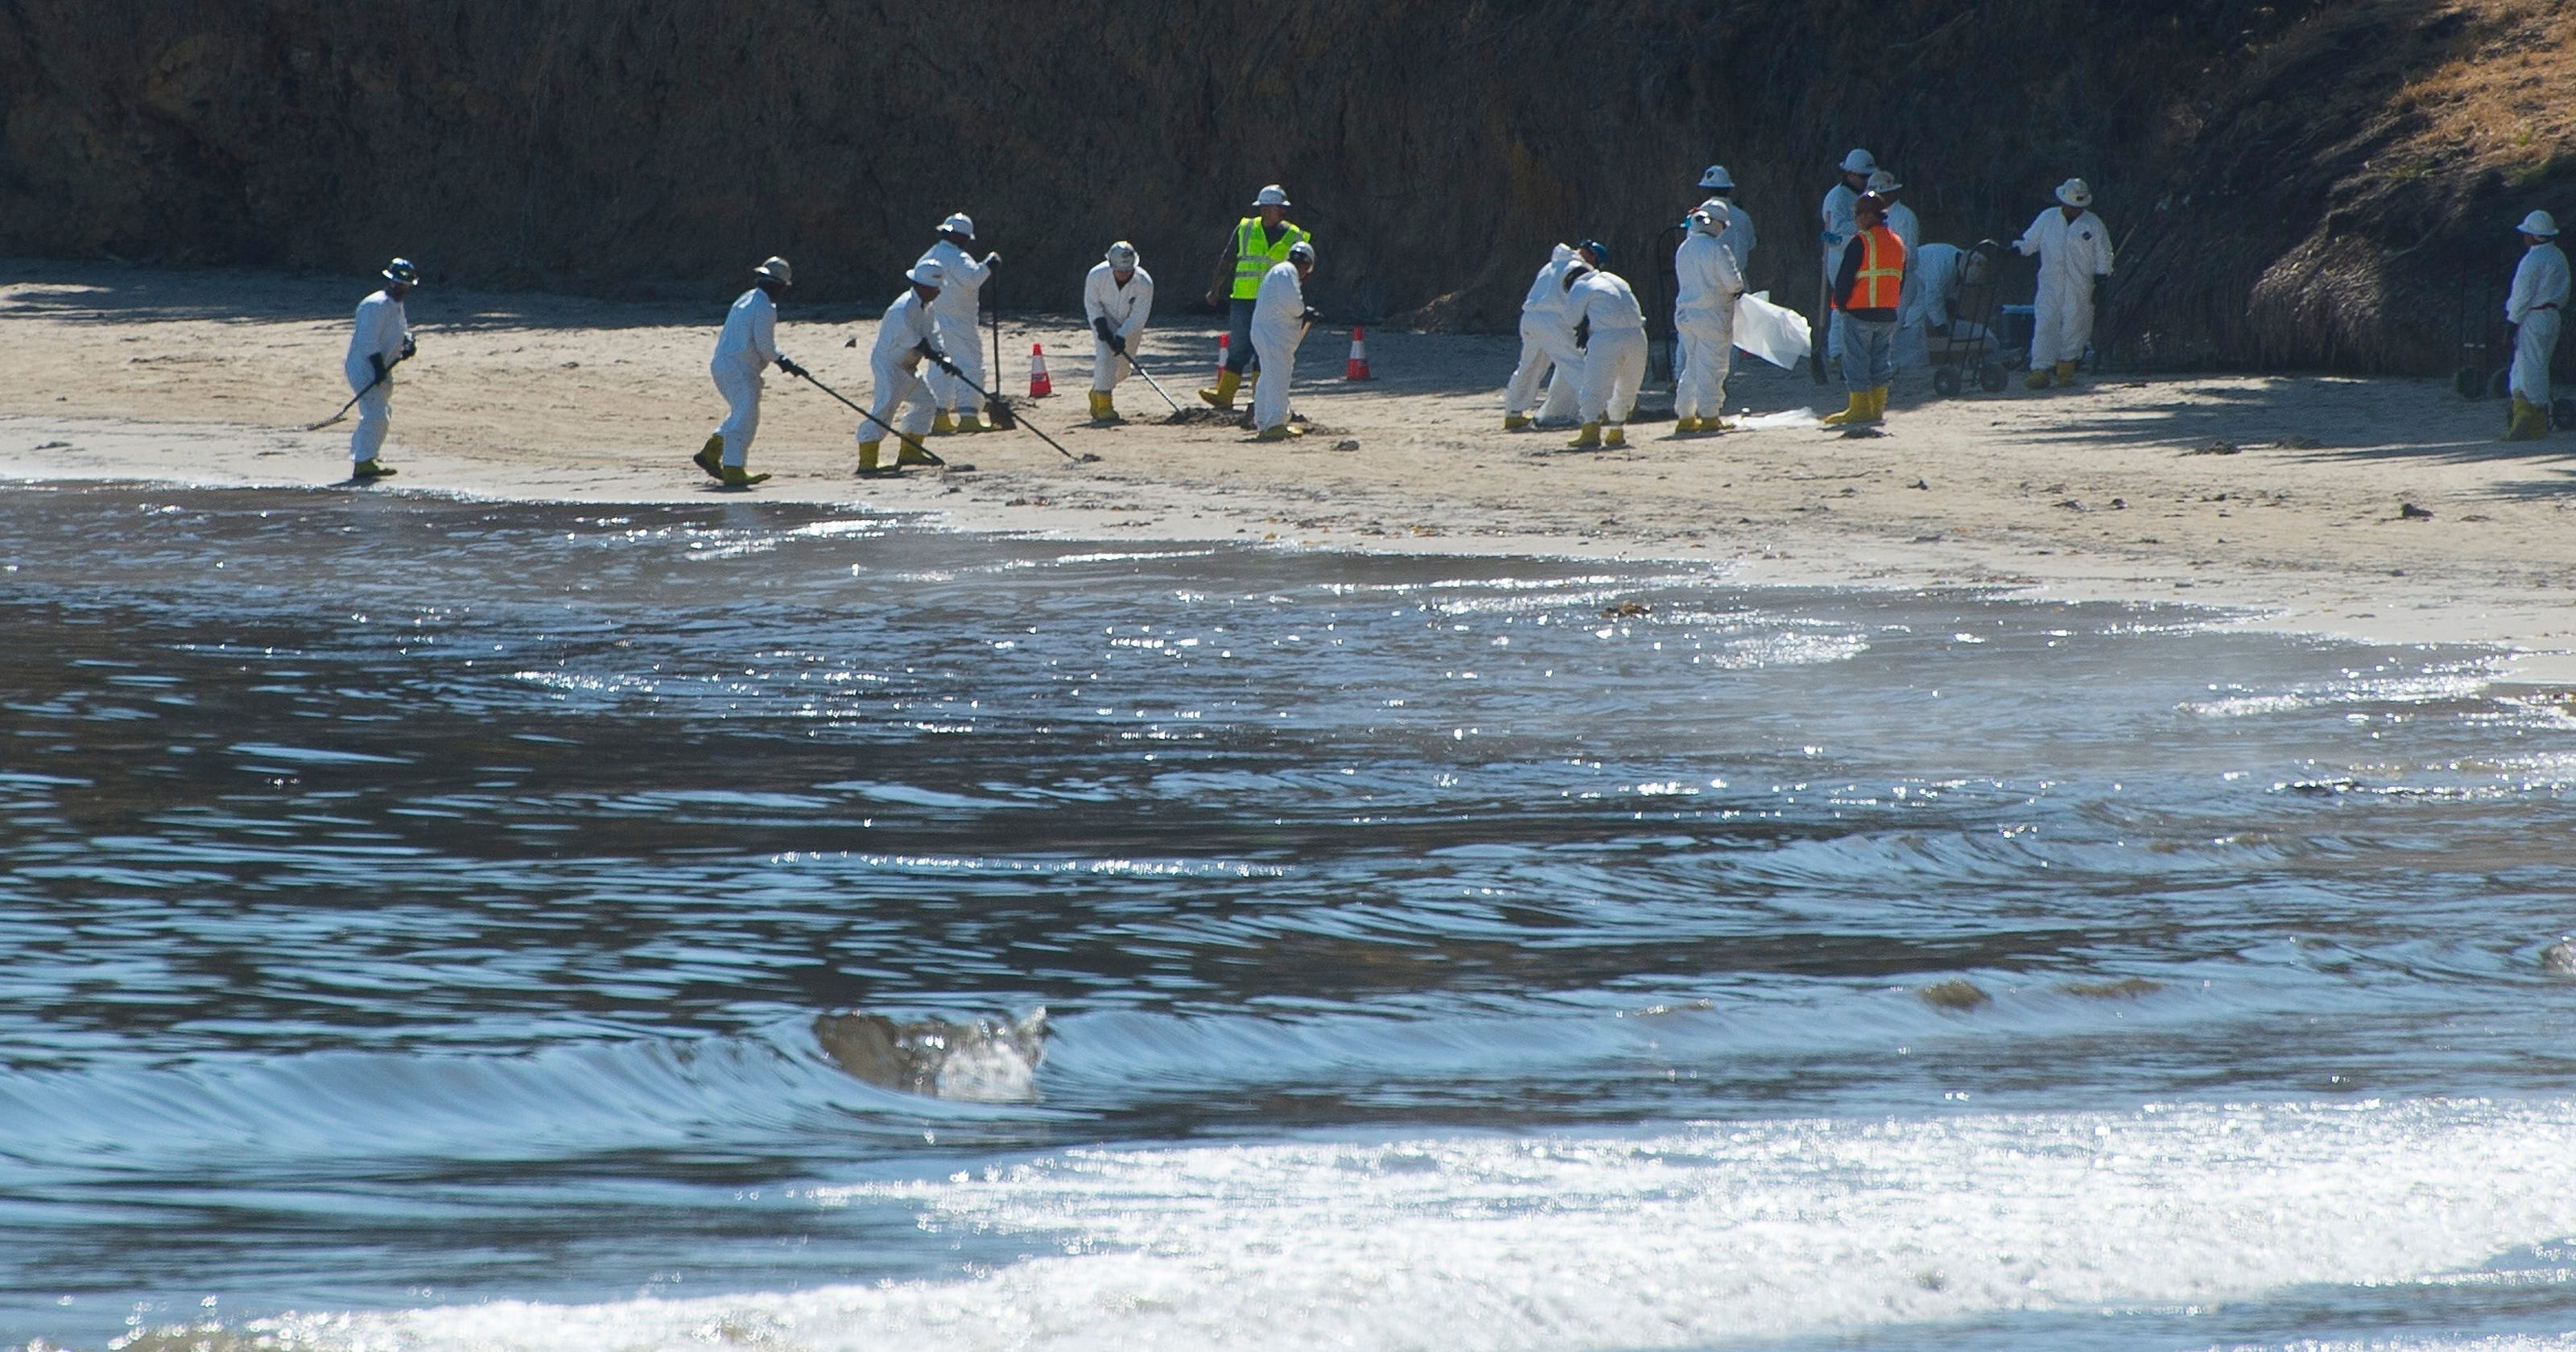 Plains All American Pipeline indicted after California oil spill